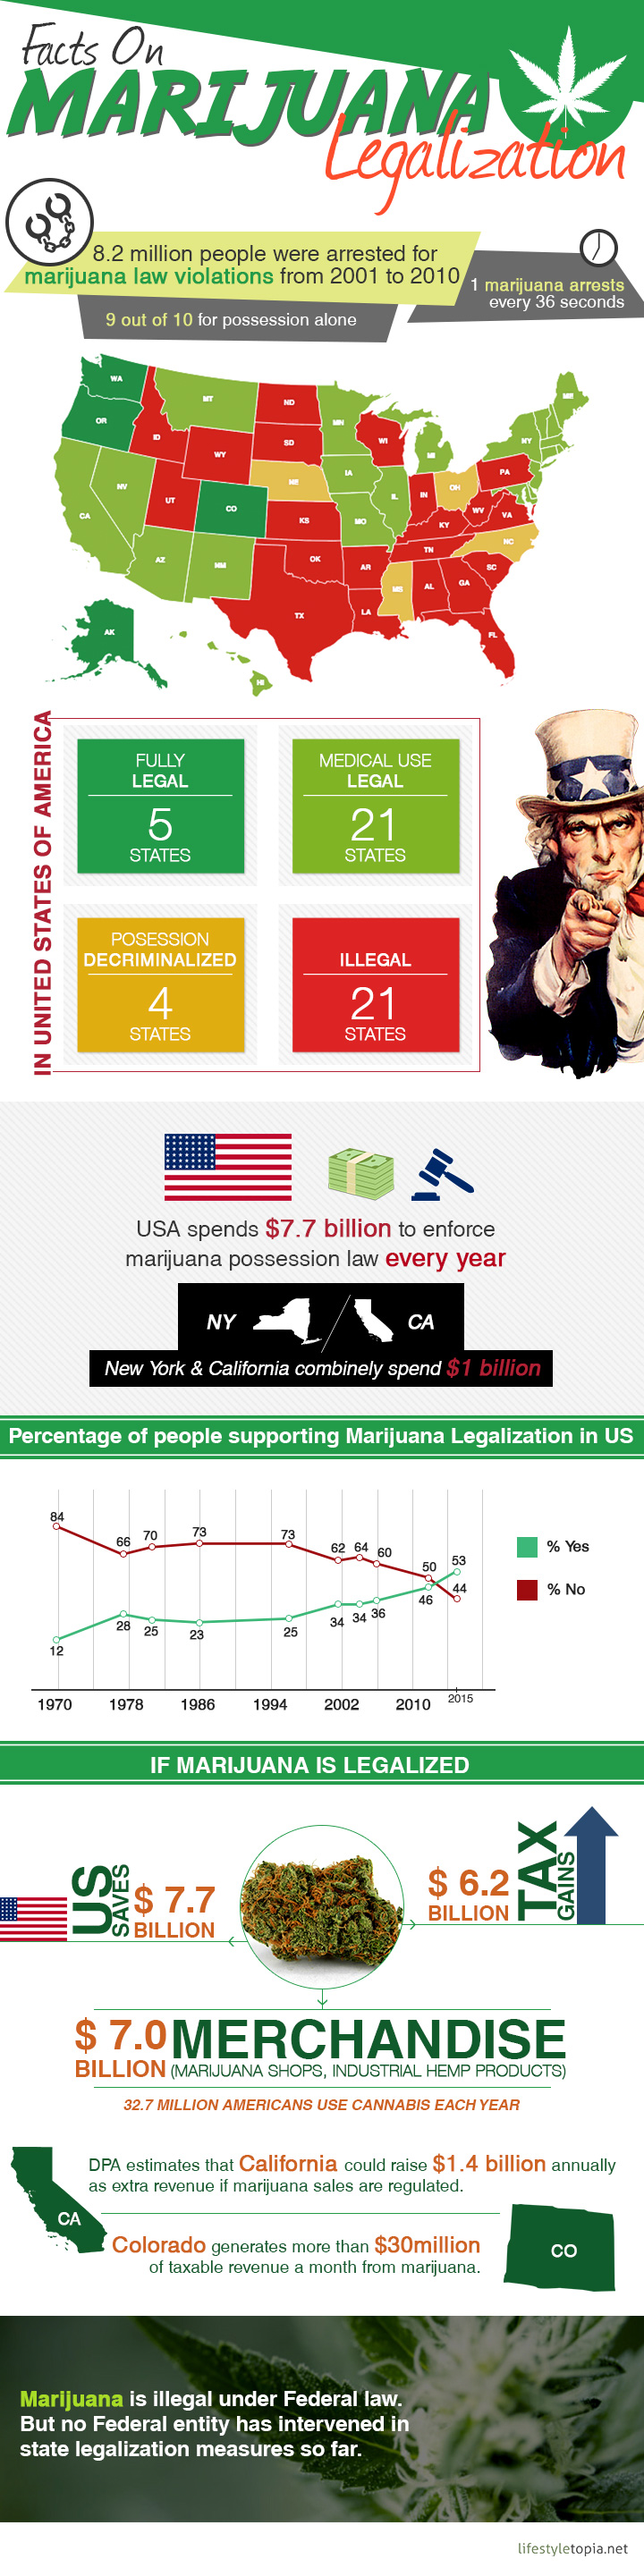 Interesting facts about marijuana possession, arrest and legalisation in United Satates